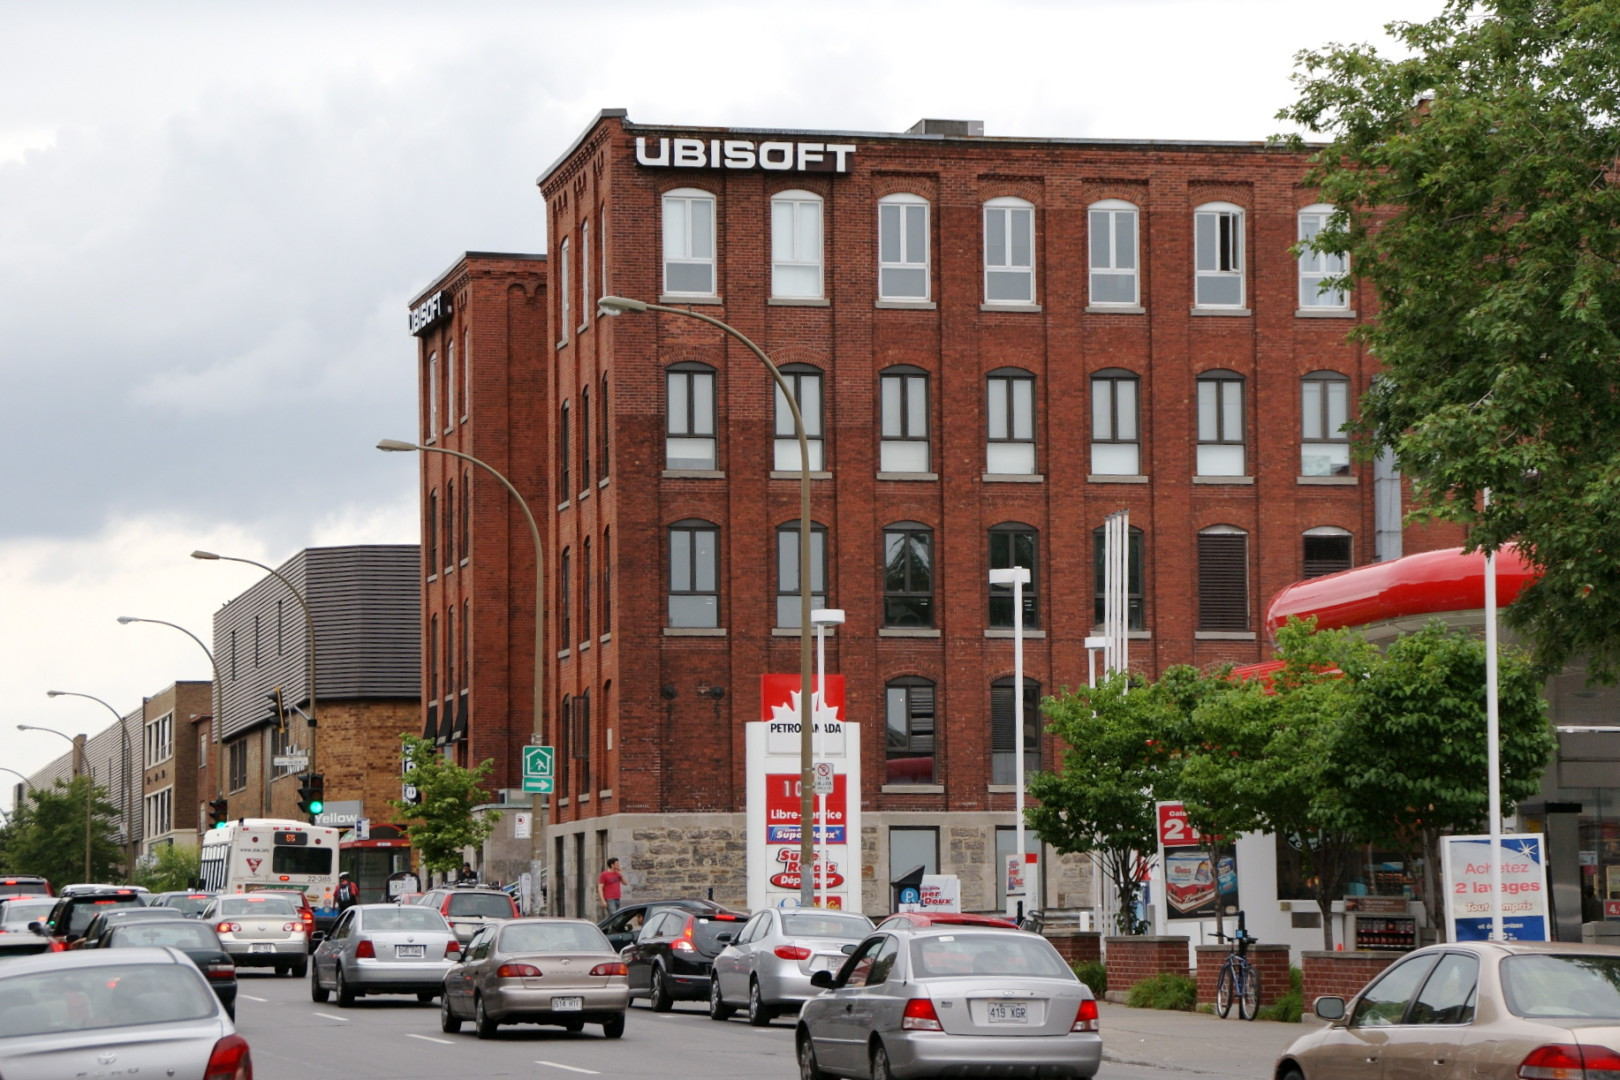 Reports suggest a possible hostage situation at Ubisoft Montreal